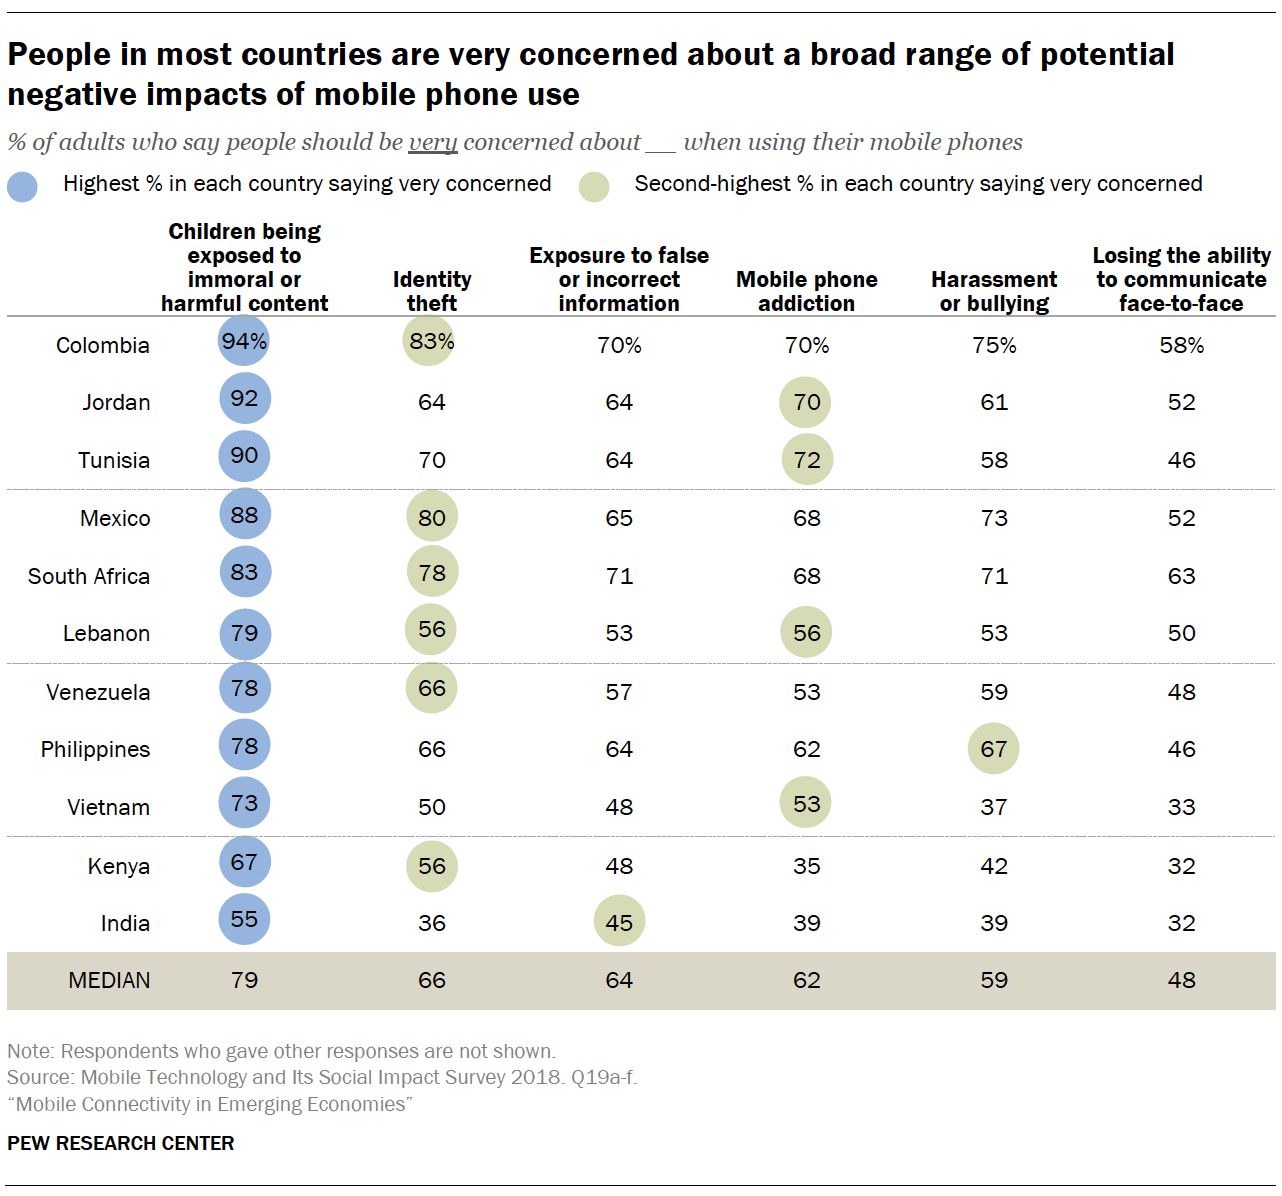 People in most countries are very concerned about a broad range of potential negative impacts of mobile phone use